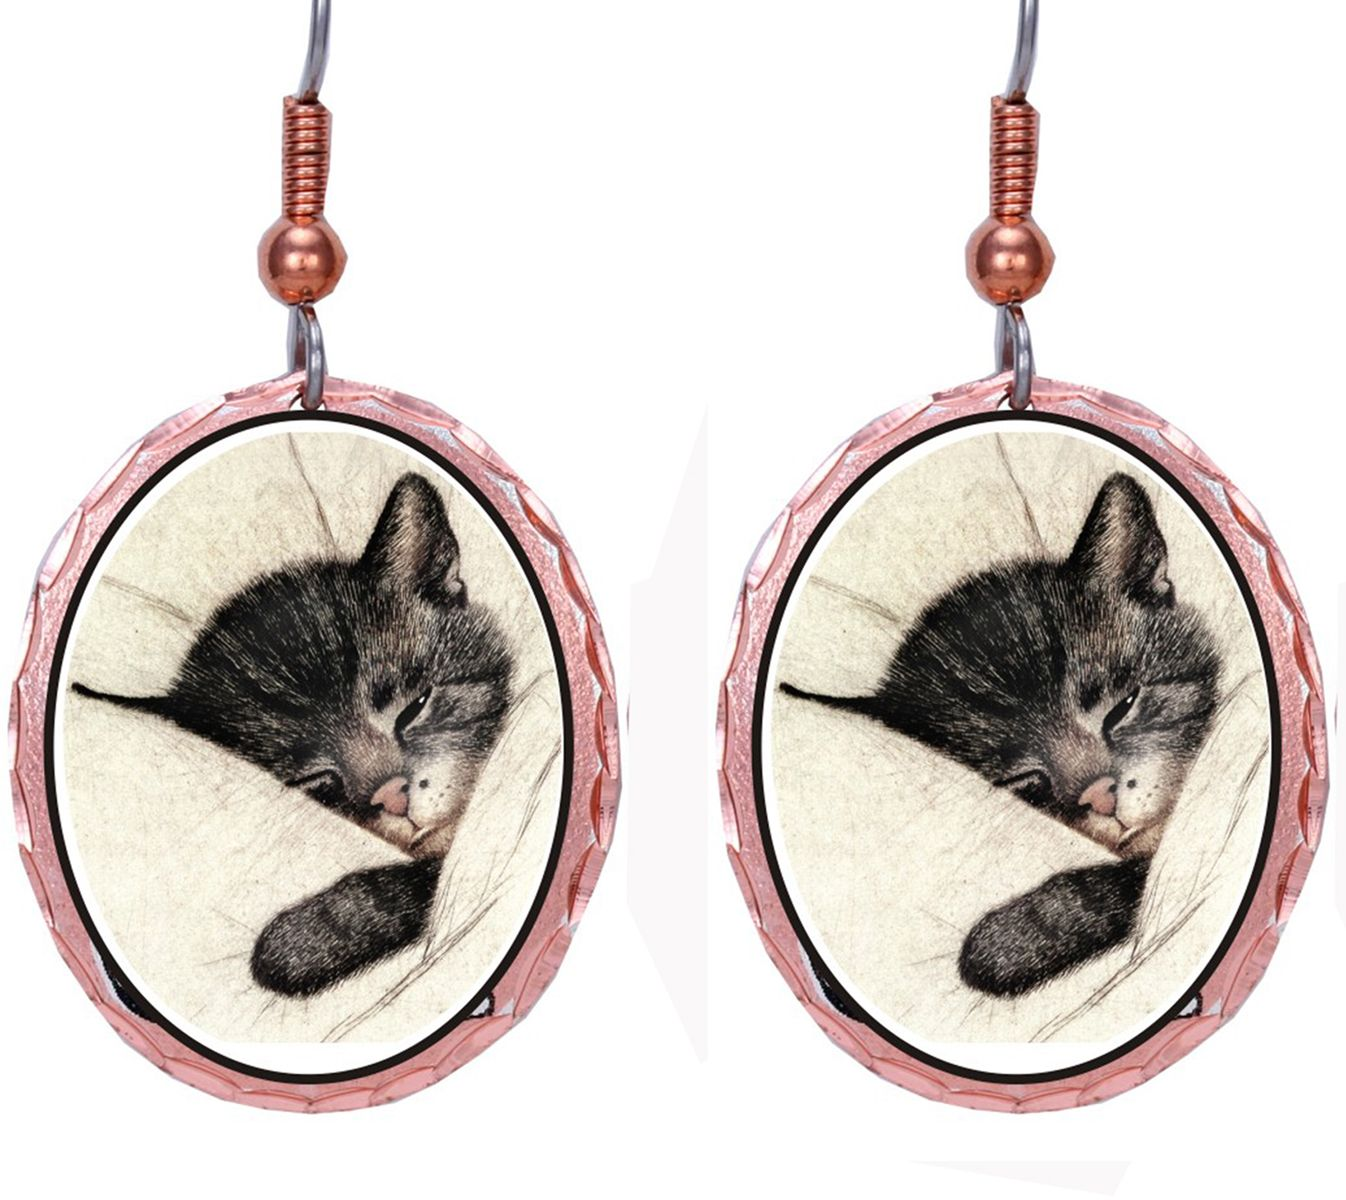 Earrings Chessie Cat Jewelry Cat Merchandise Kitten Pillow